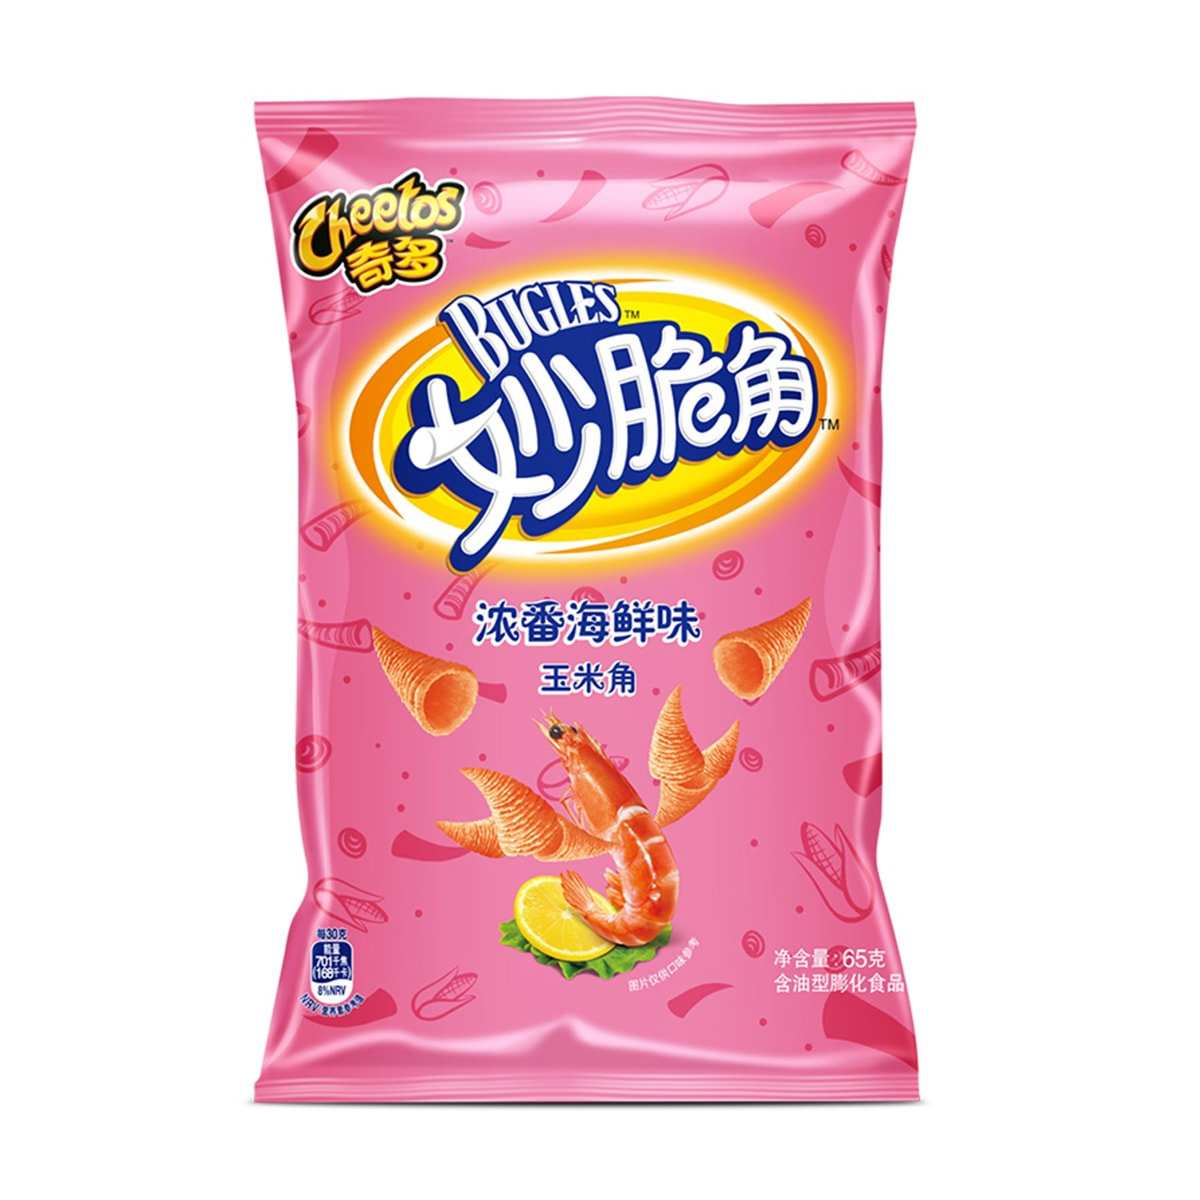 Yamibuy.com:Customer reviews:Cheetos Bugles Seafood Flavor 65g